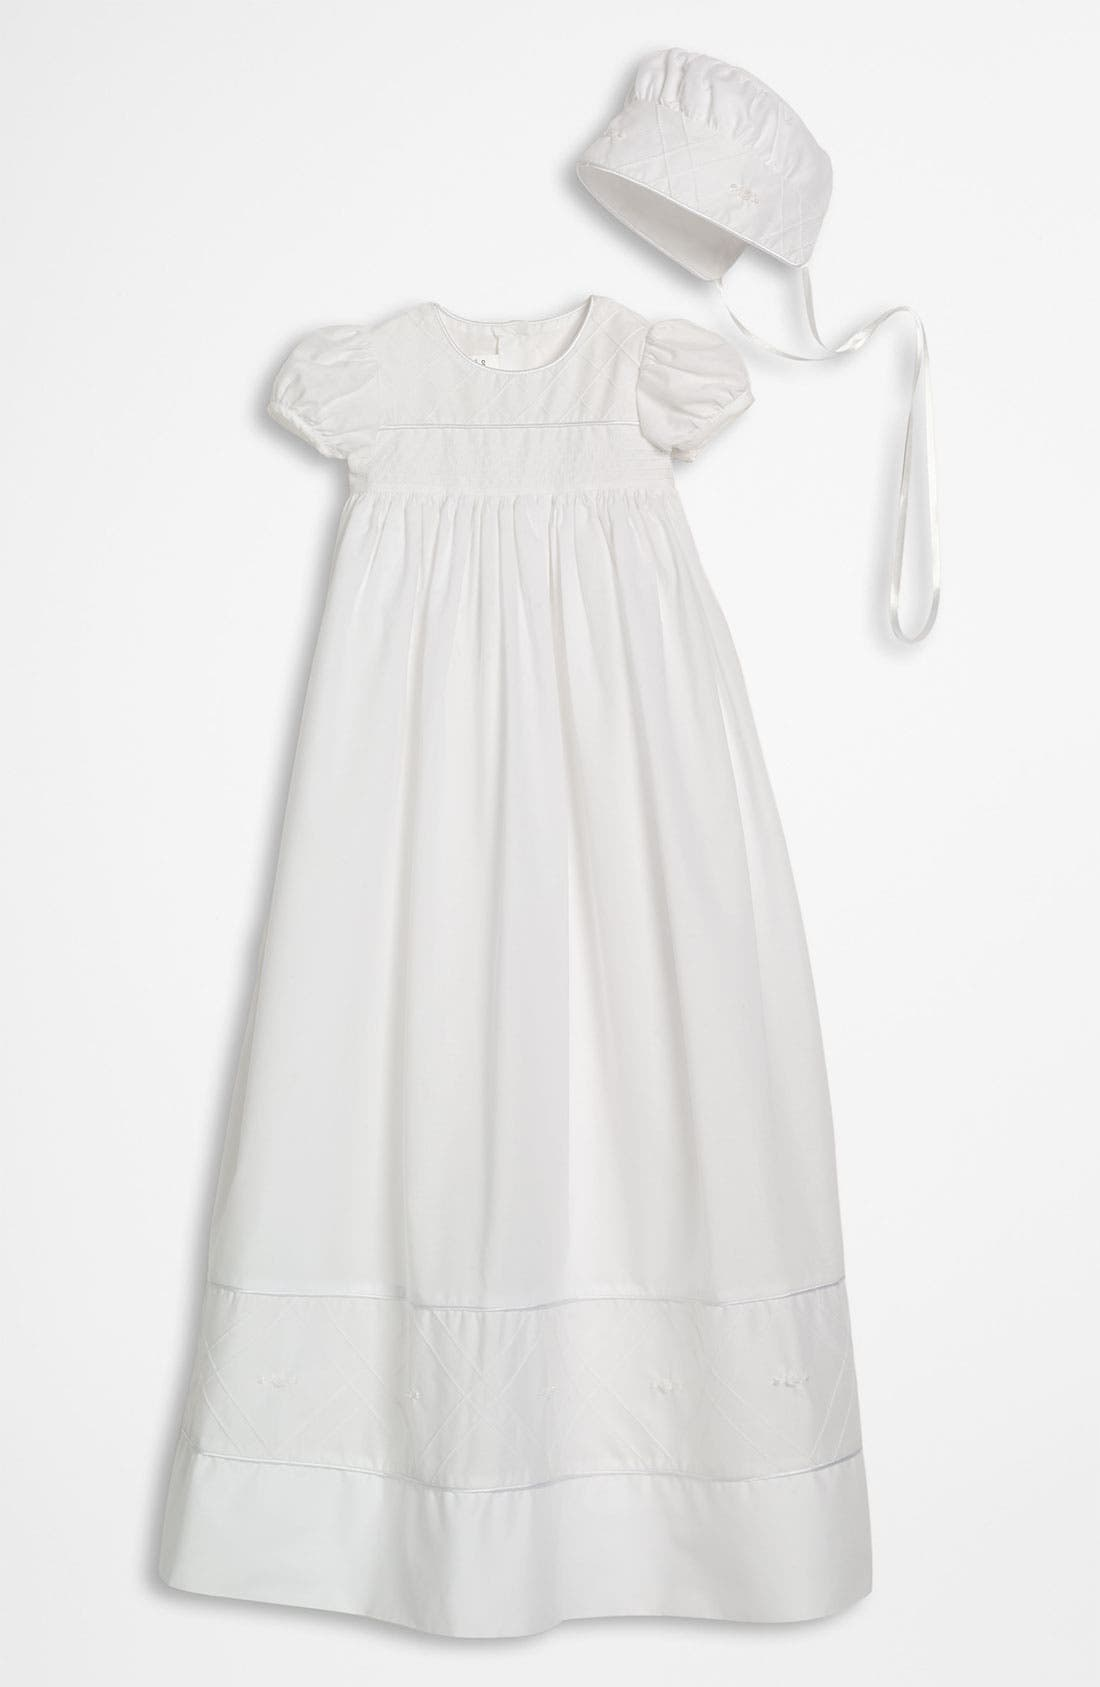 Little Things Mean a Lot Gown & Bonnet (Baby)